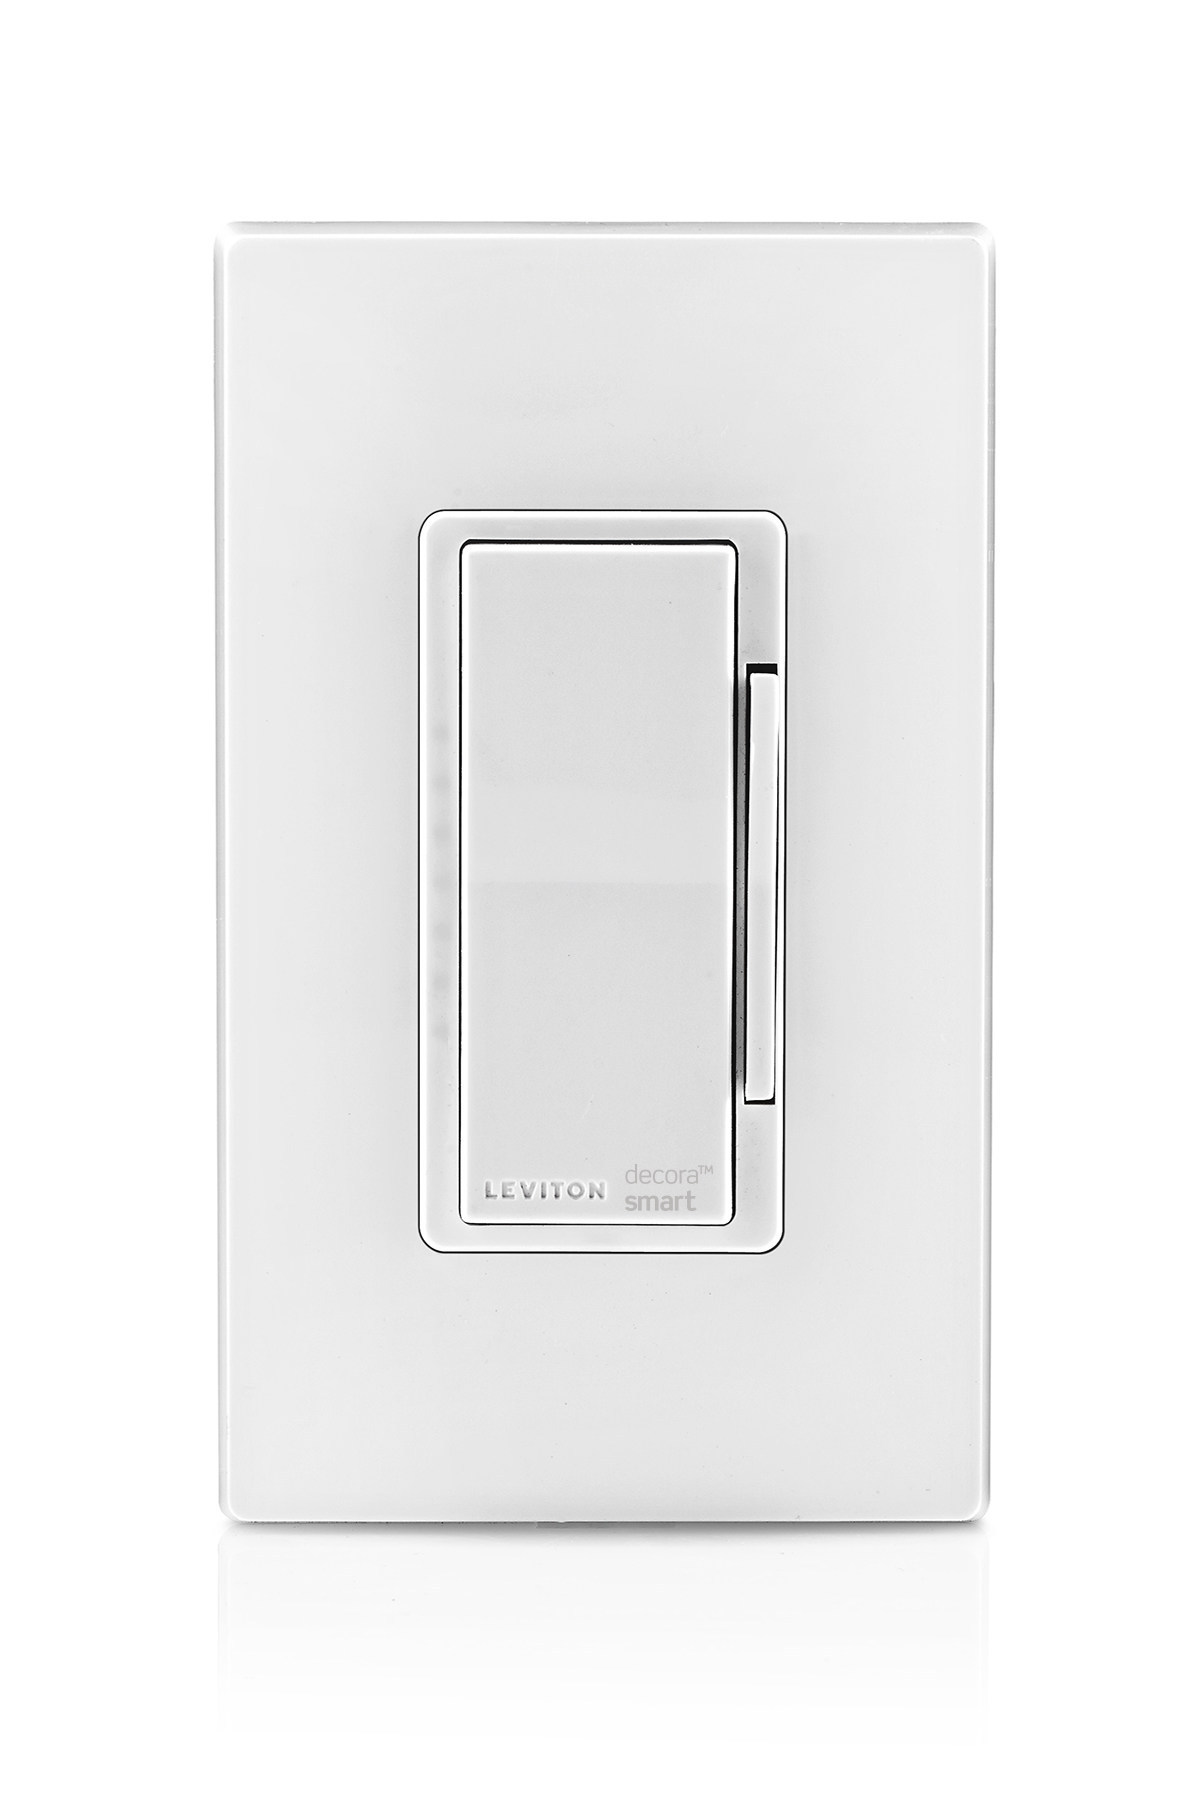 leviton announces decora smart in wall dimmers and switches with apple homeki. Black Bedroom Furniture Sets. Home Design Ideas